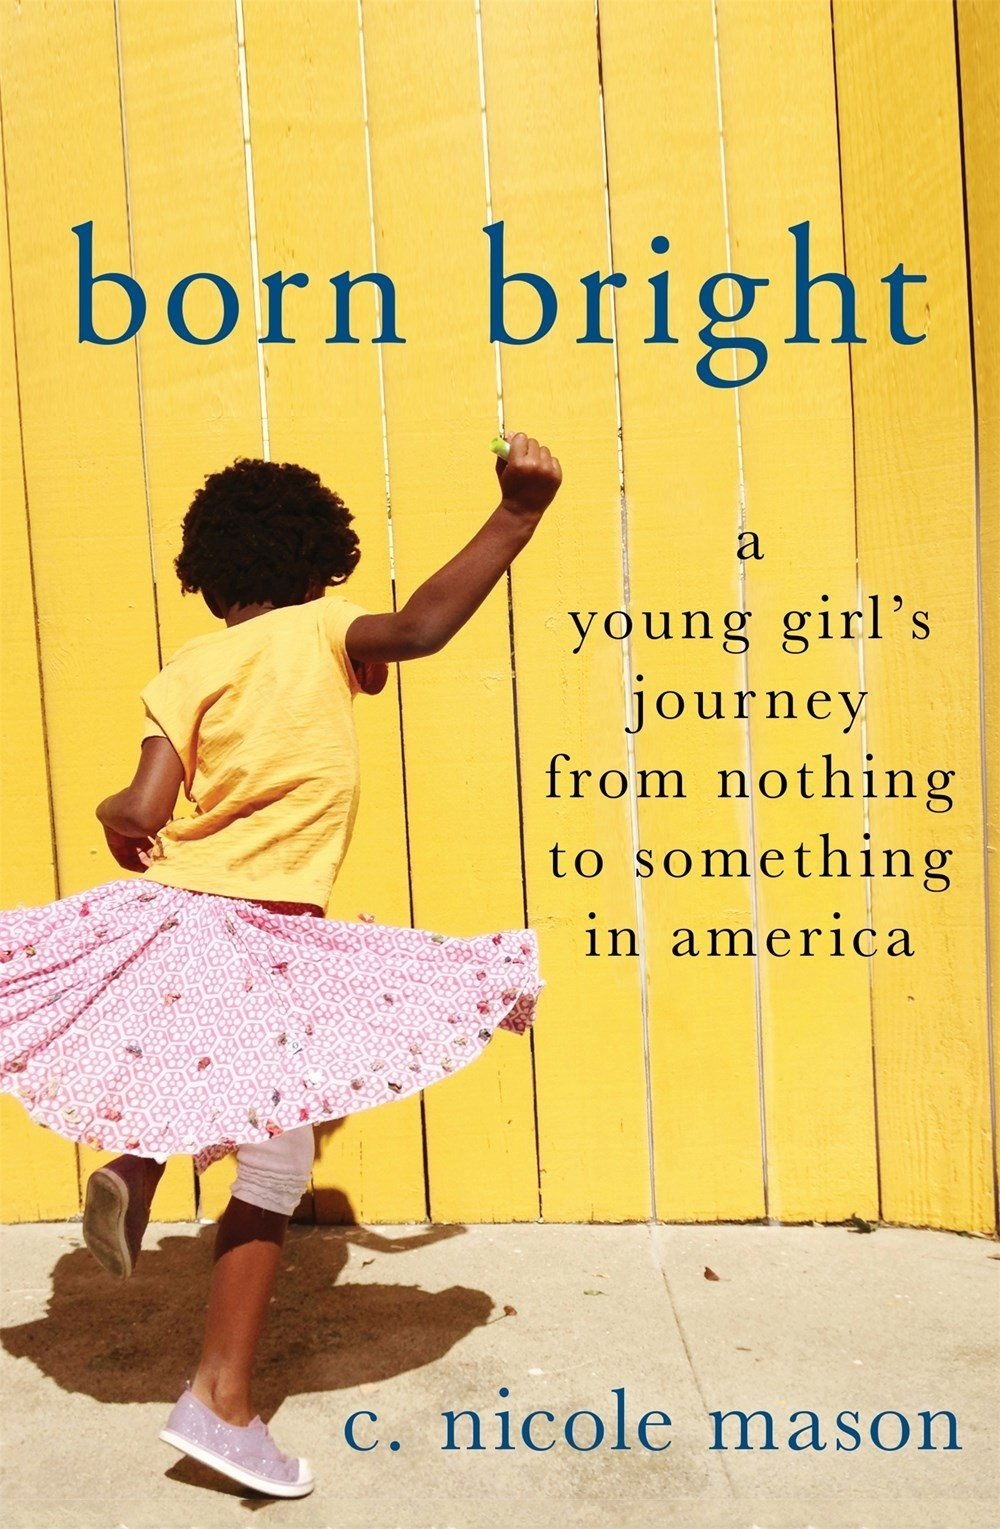 born-bright-a-young-girl-s-journey-from-nothing-to-something-in-america